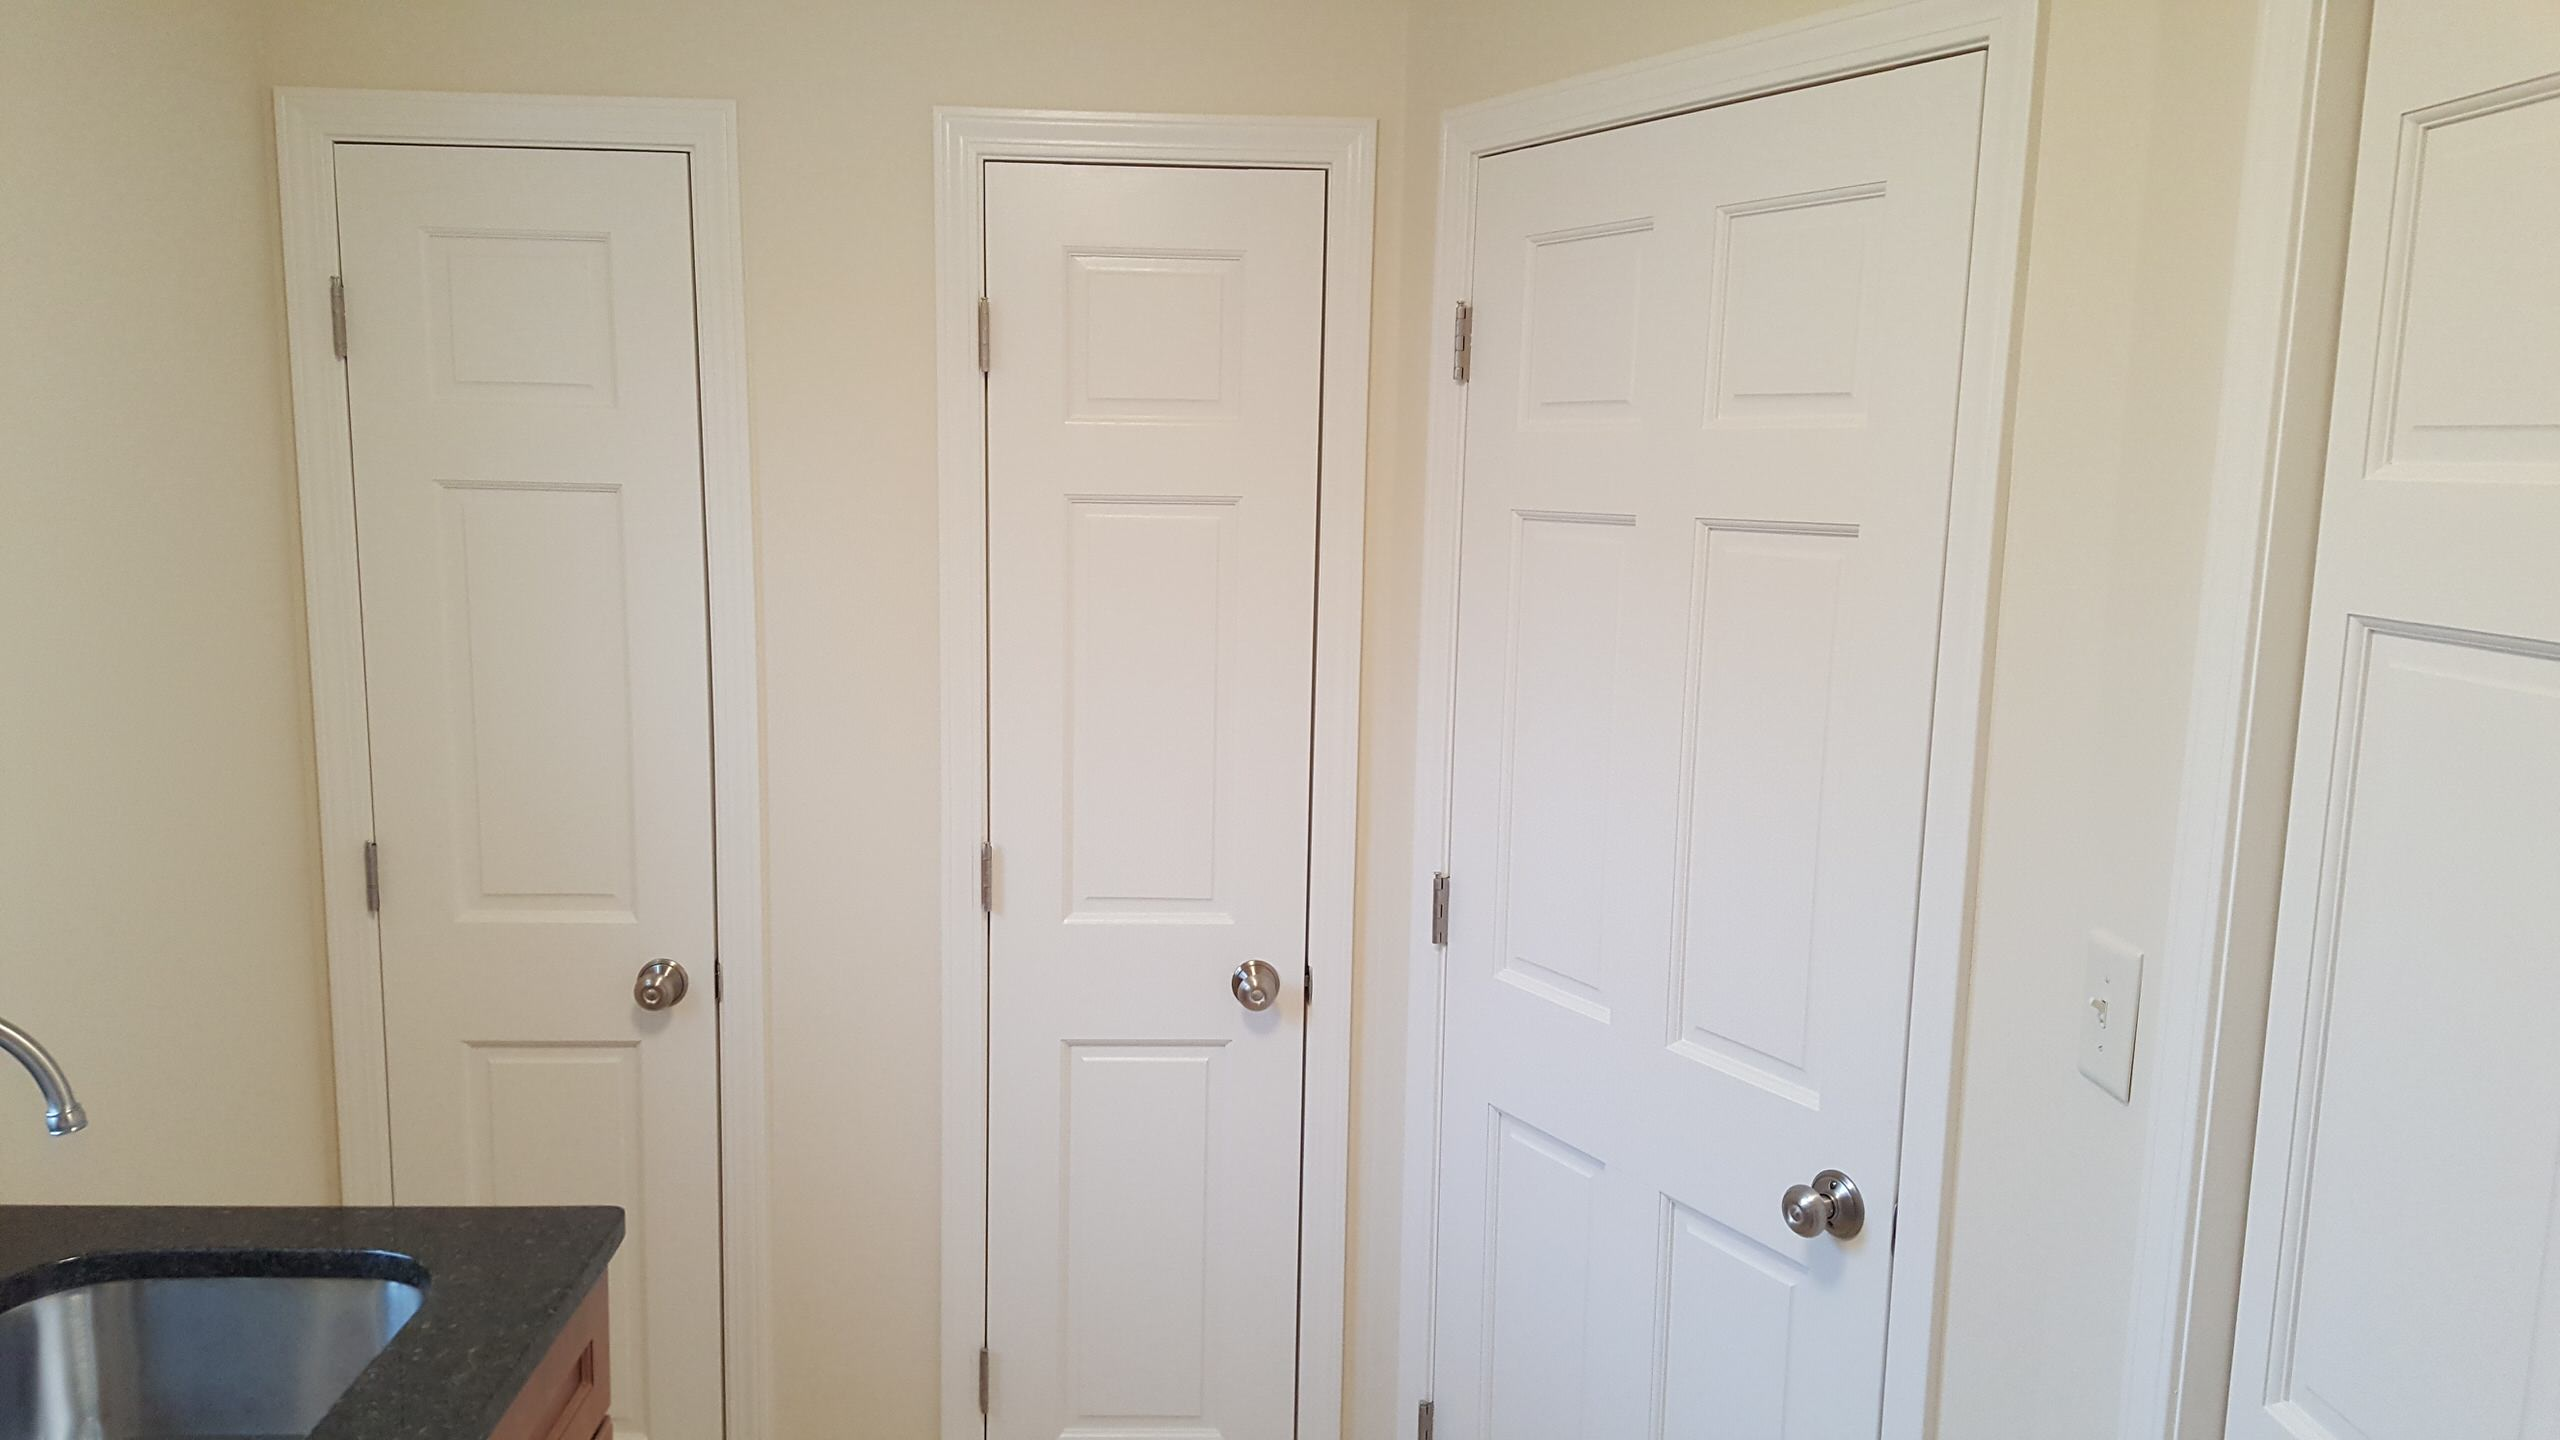 Laundry room...left door=broom closet, center=linen closet rear door, right=hall